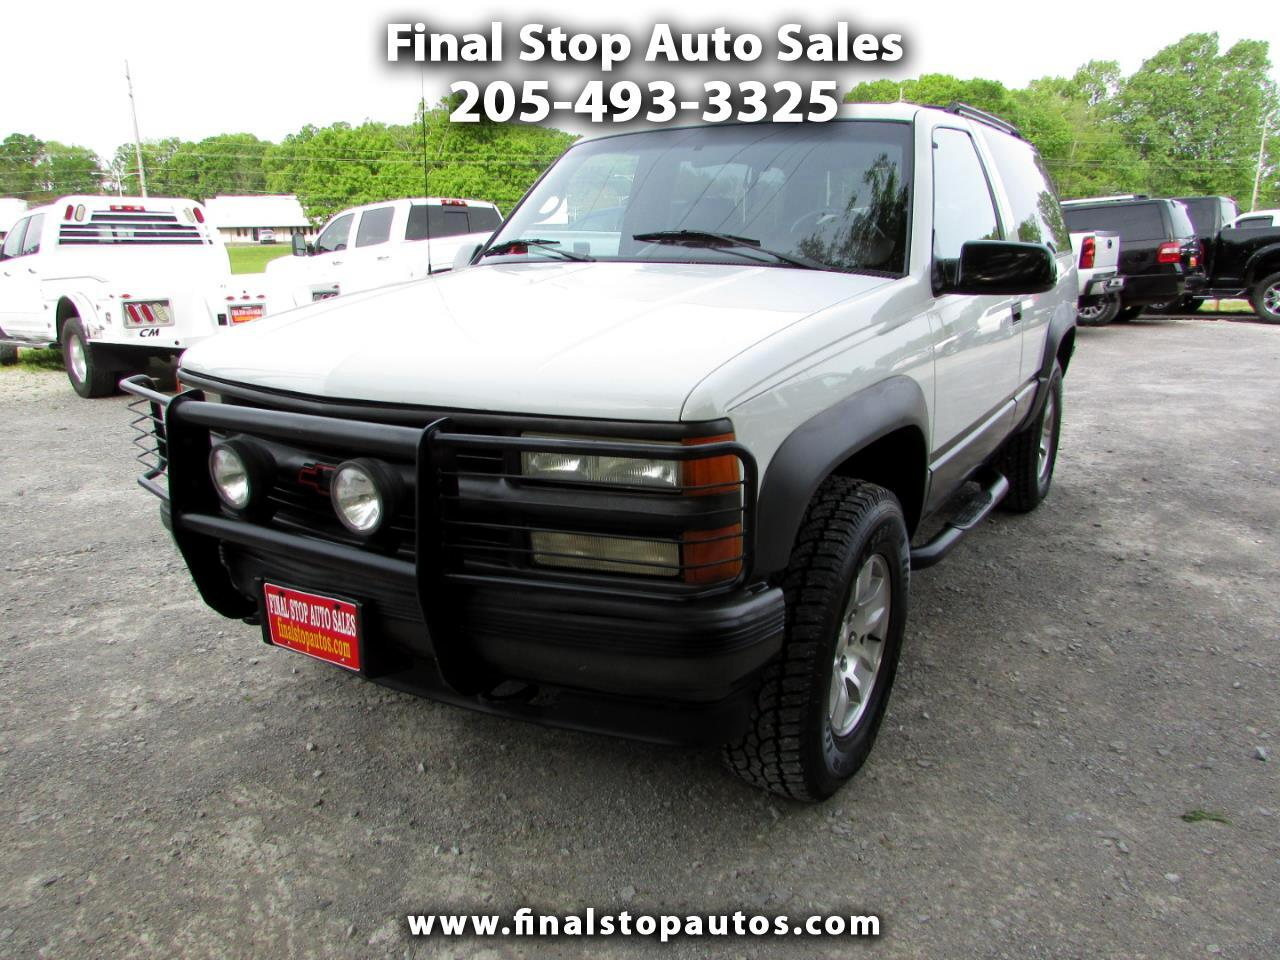 Chevrolet Tahoe 1500 2dr 4WD 1995